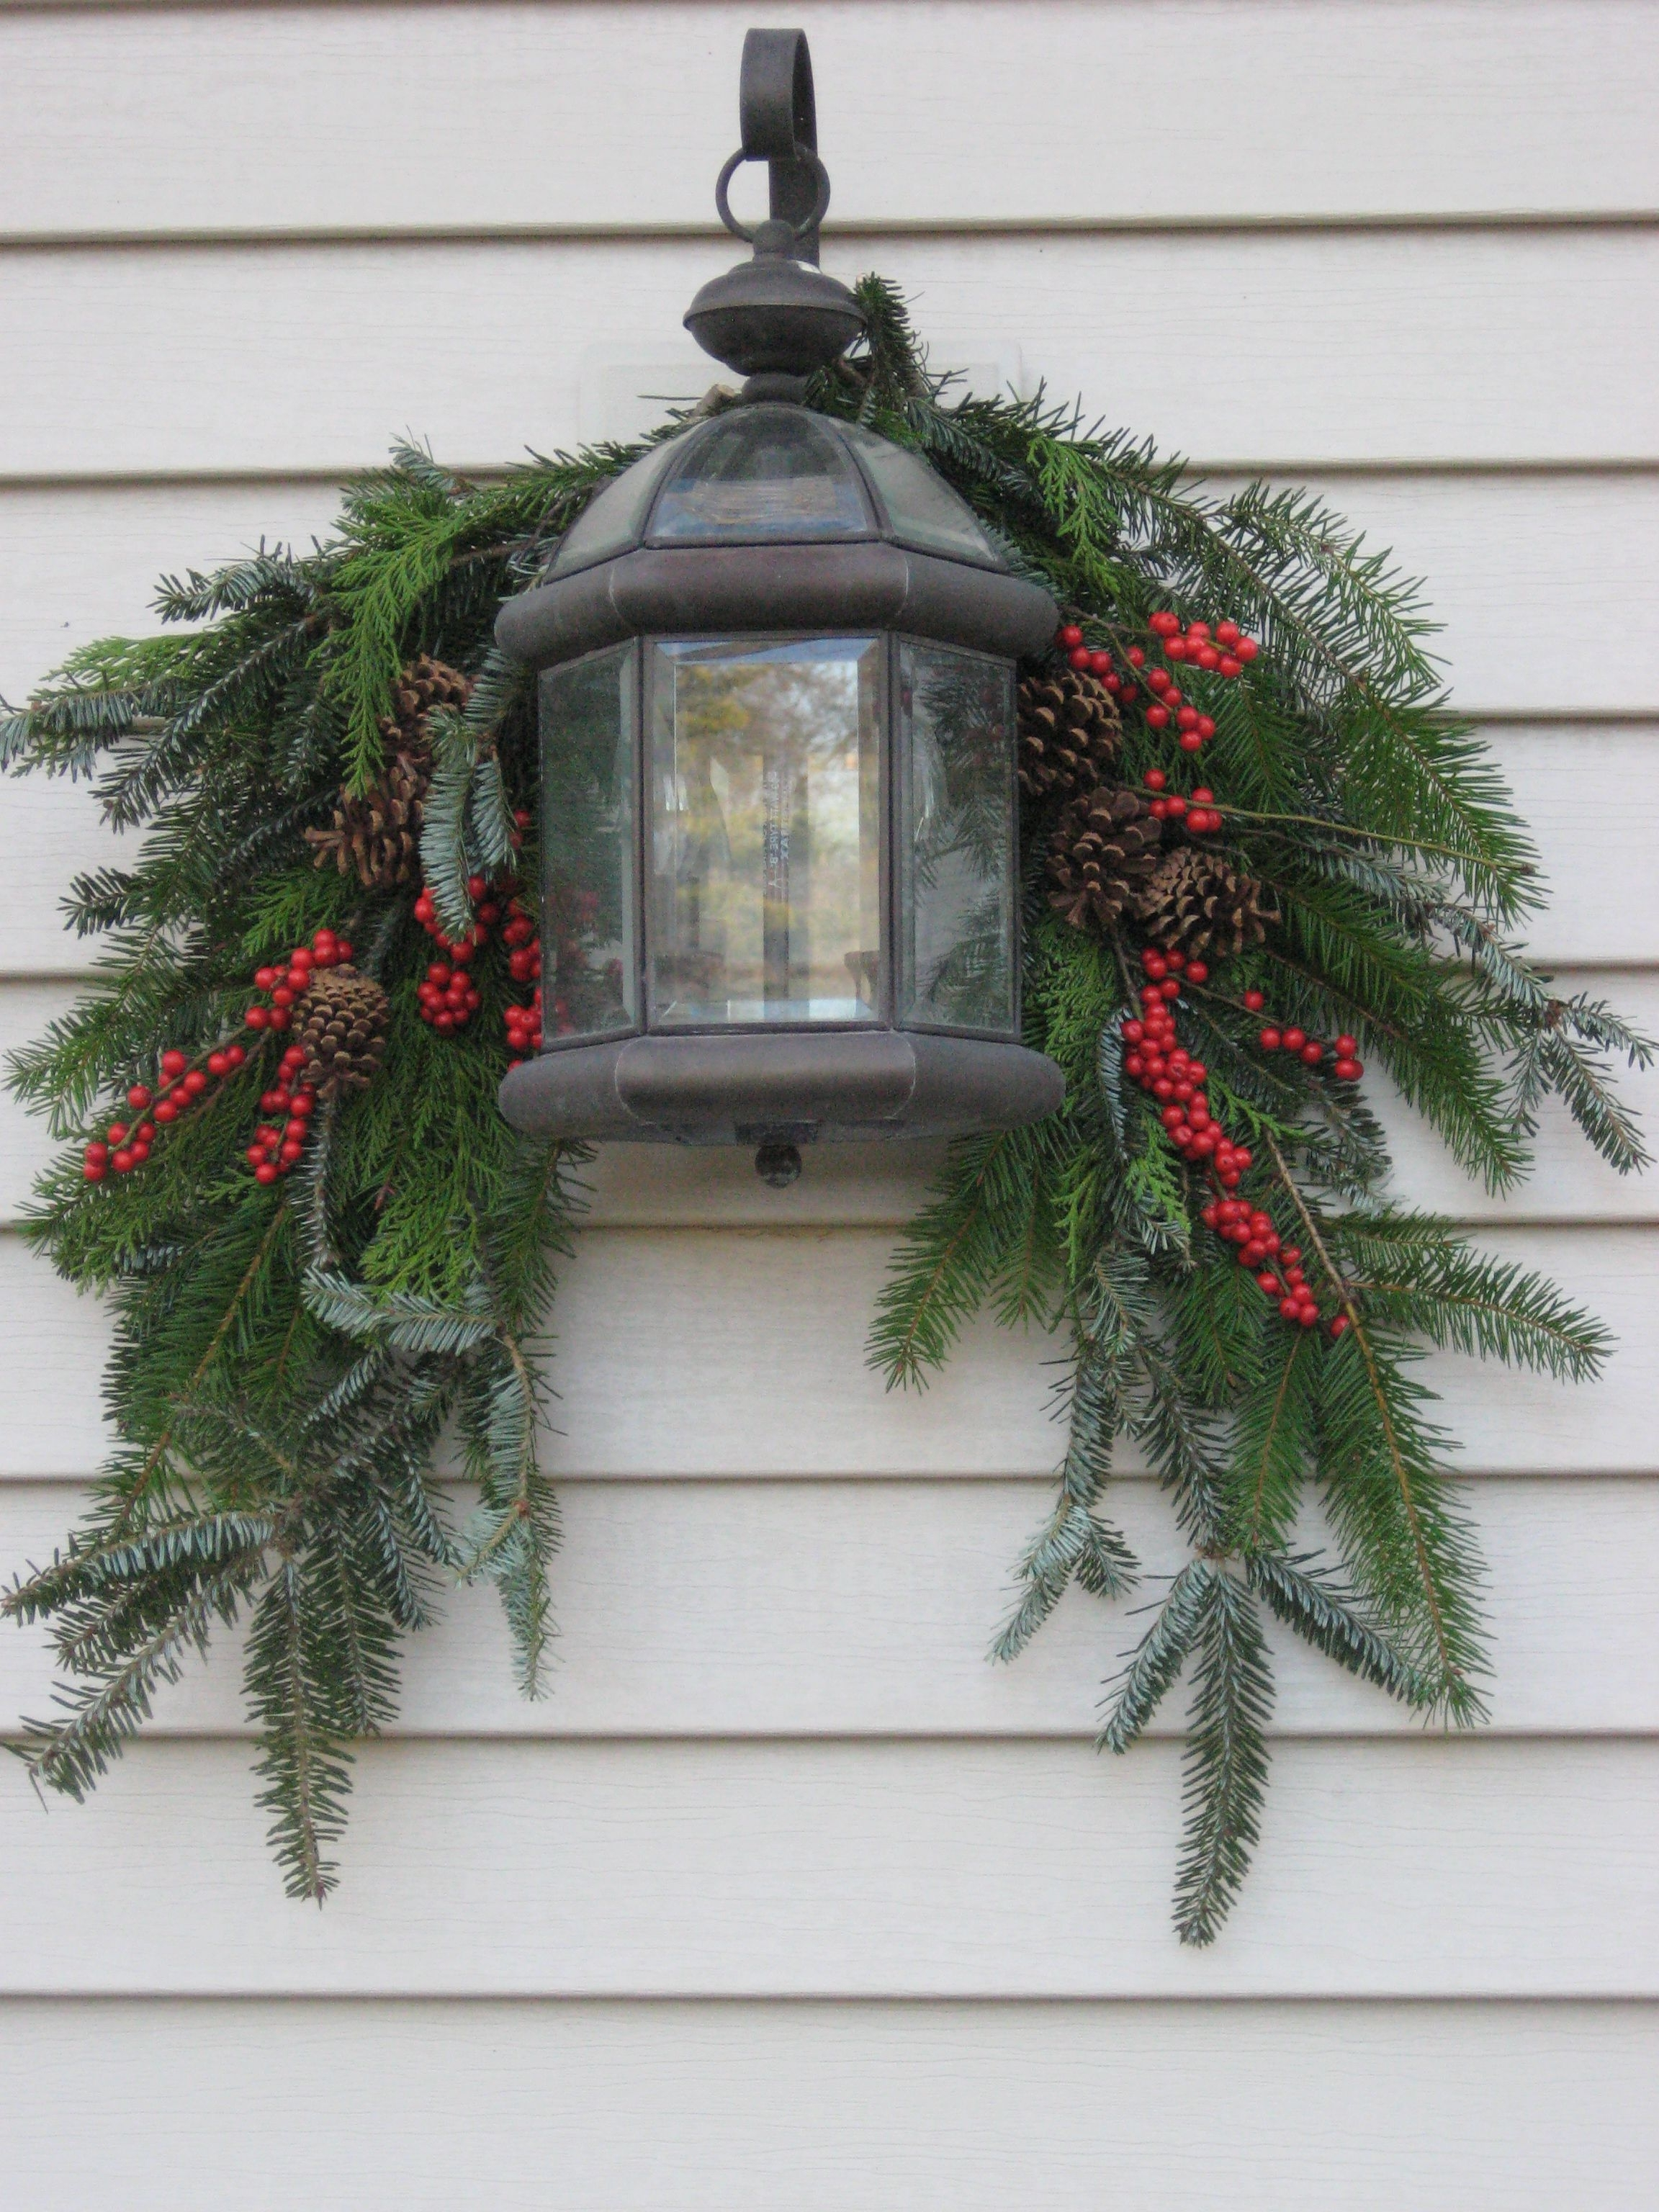 Trendy A Guide To Beautiful (And Not Tacky) Outdoor Holiday Decor In 2018 For Outdoor Xmas Lanterns (Gallery 12 of 20)